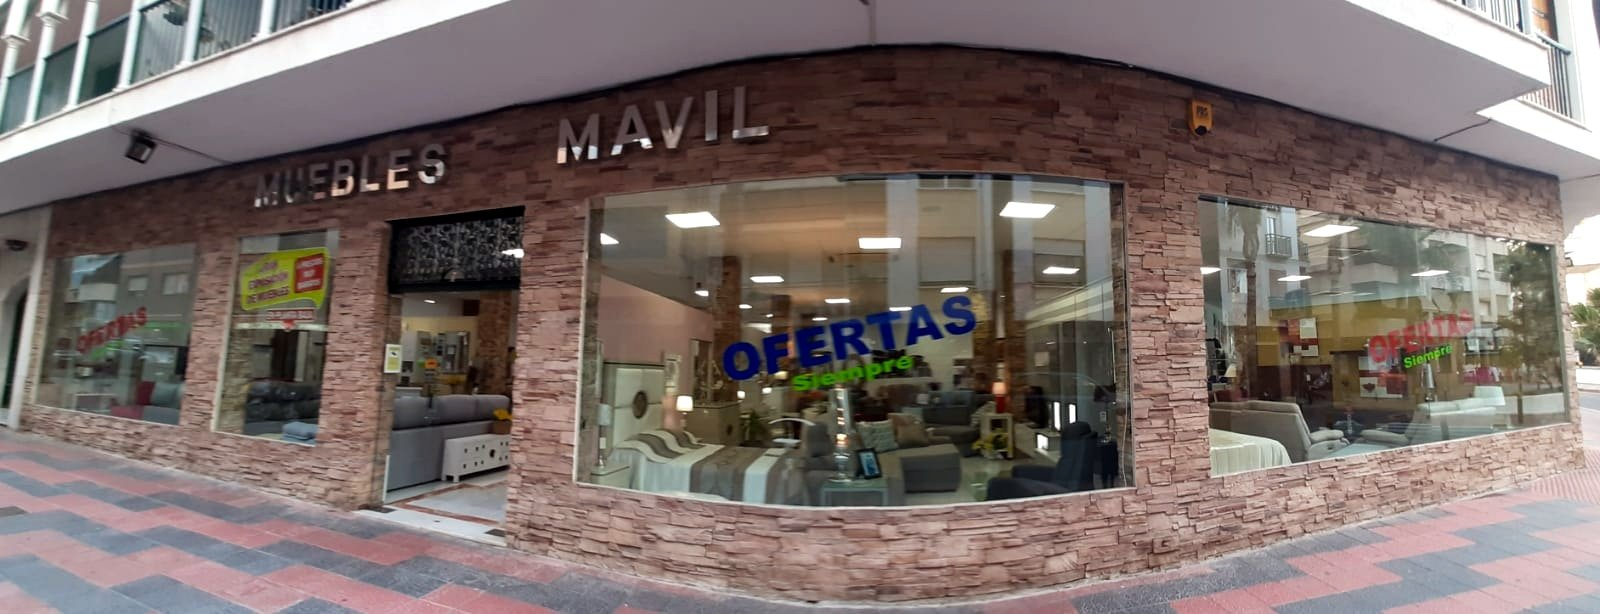 Muebles Mavil is the largest furniture store in Almunecar and offers you everything for your home furnishings. Sofa beds, couches, chairs, mattresses, bed frames, dining table, coffee table, outdoor furniture and more.